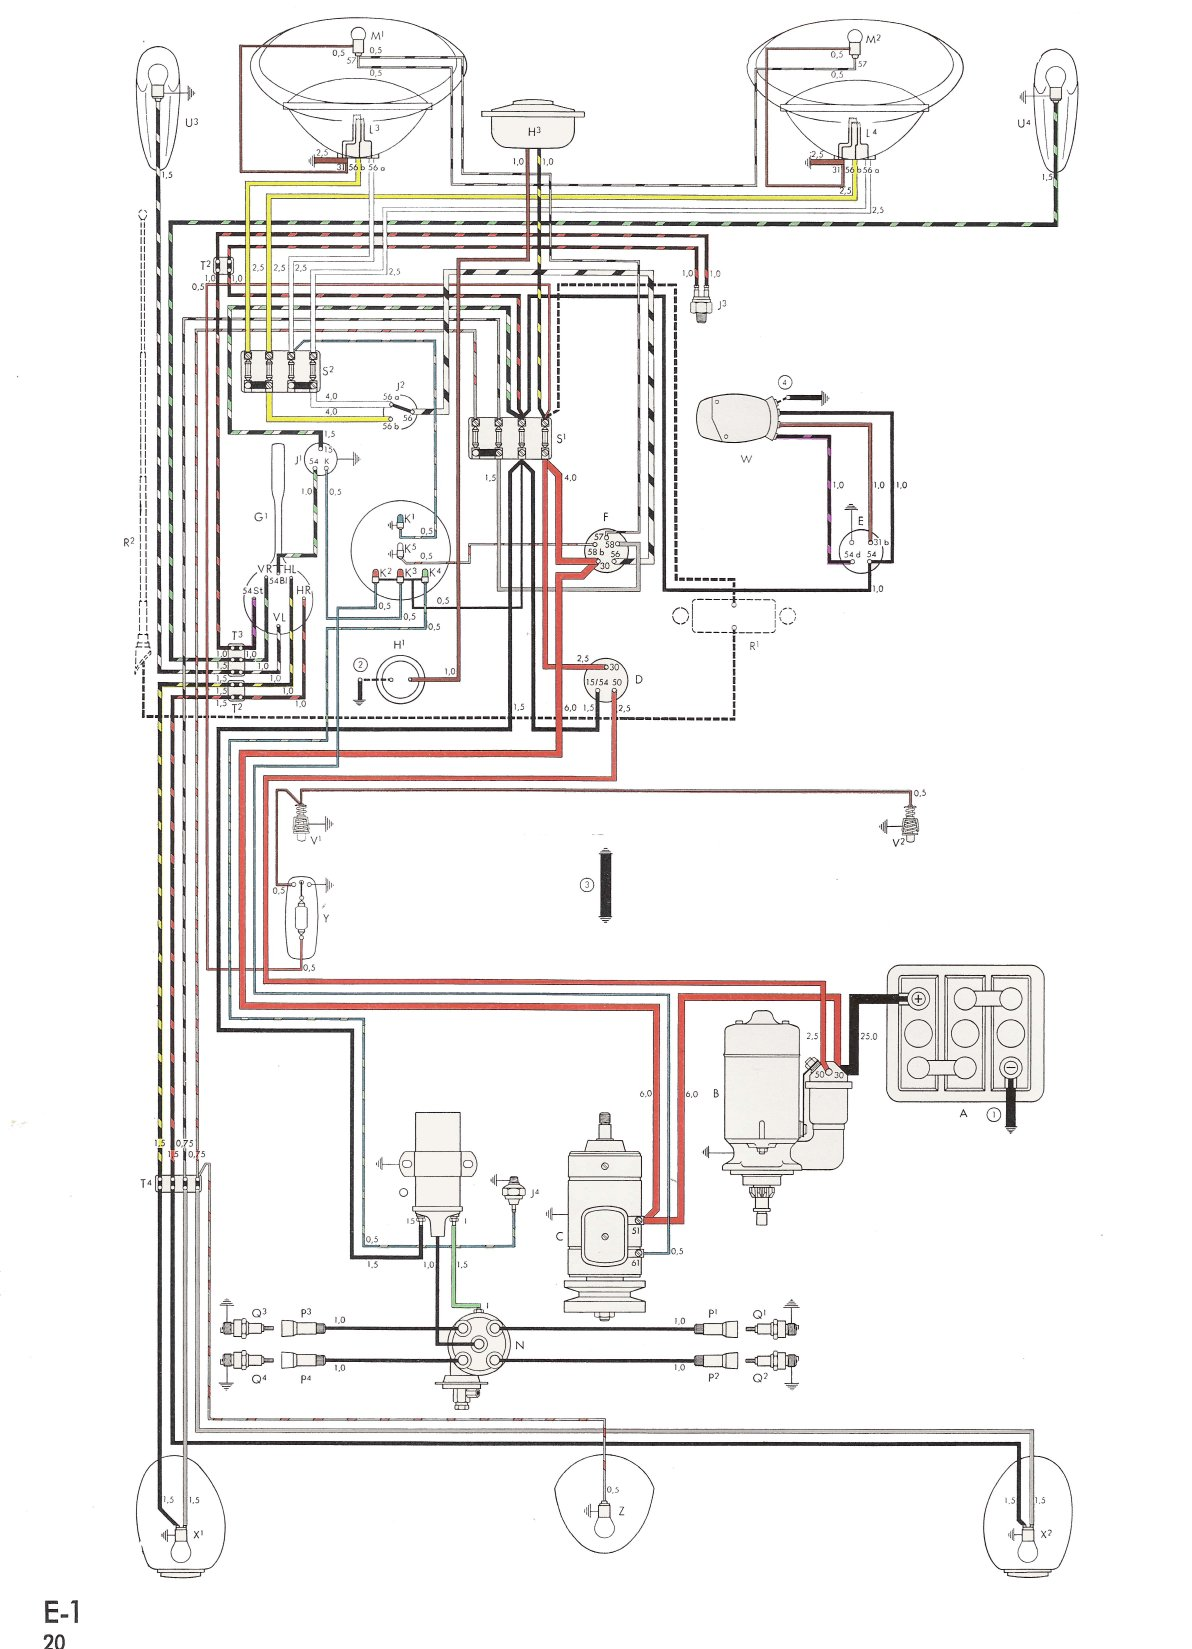 2001 vw beetle ac wiring diagram thesamba.com :: type 1 wiring diagrams vw beetle generator wiring diagram thesamba gallery #13